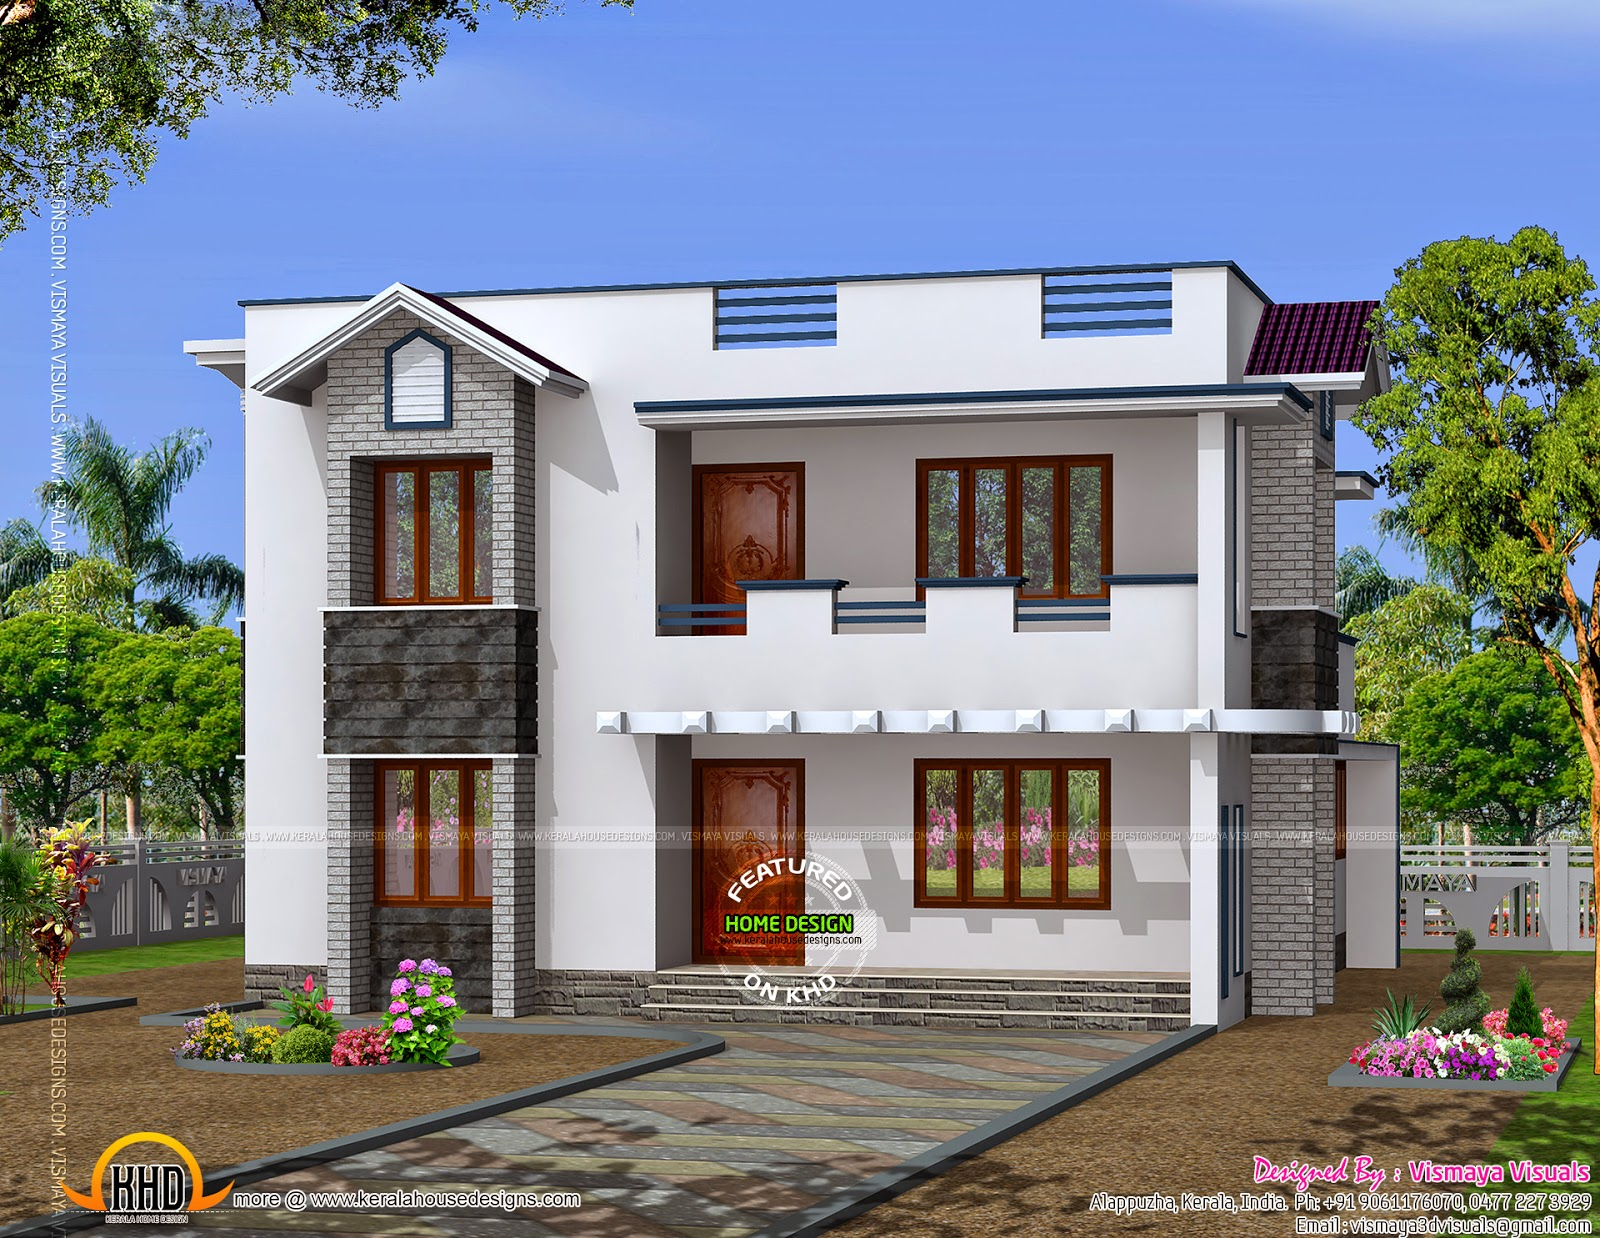 Simple design home kerala home design and floor plans Latest simple house design